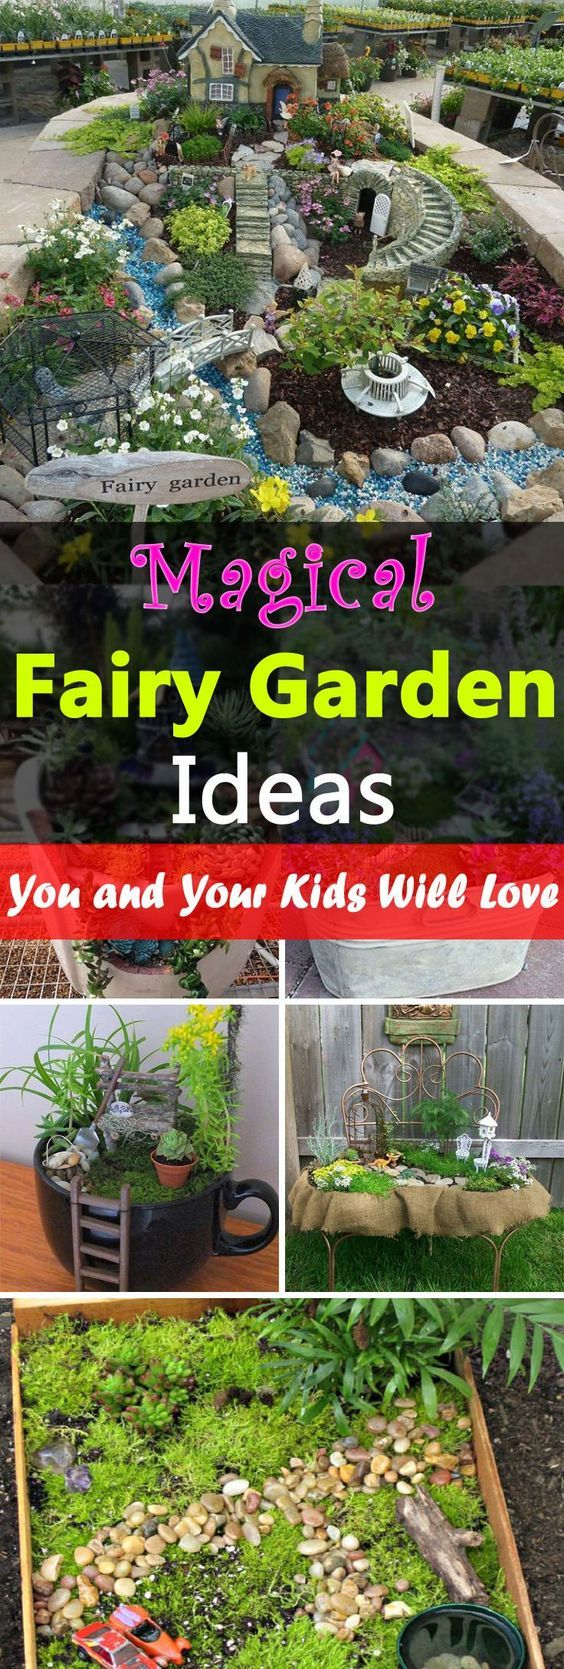 54 best images about fairy garden on Pinterest